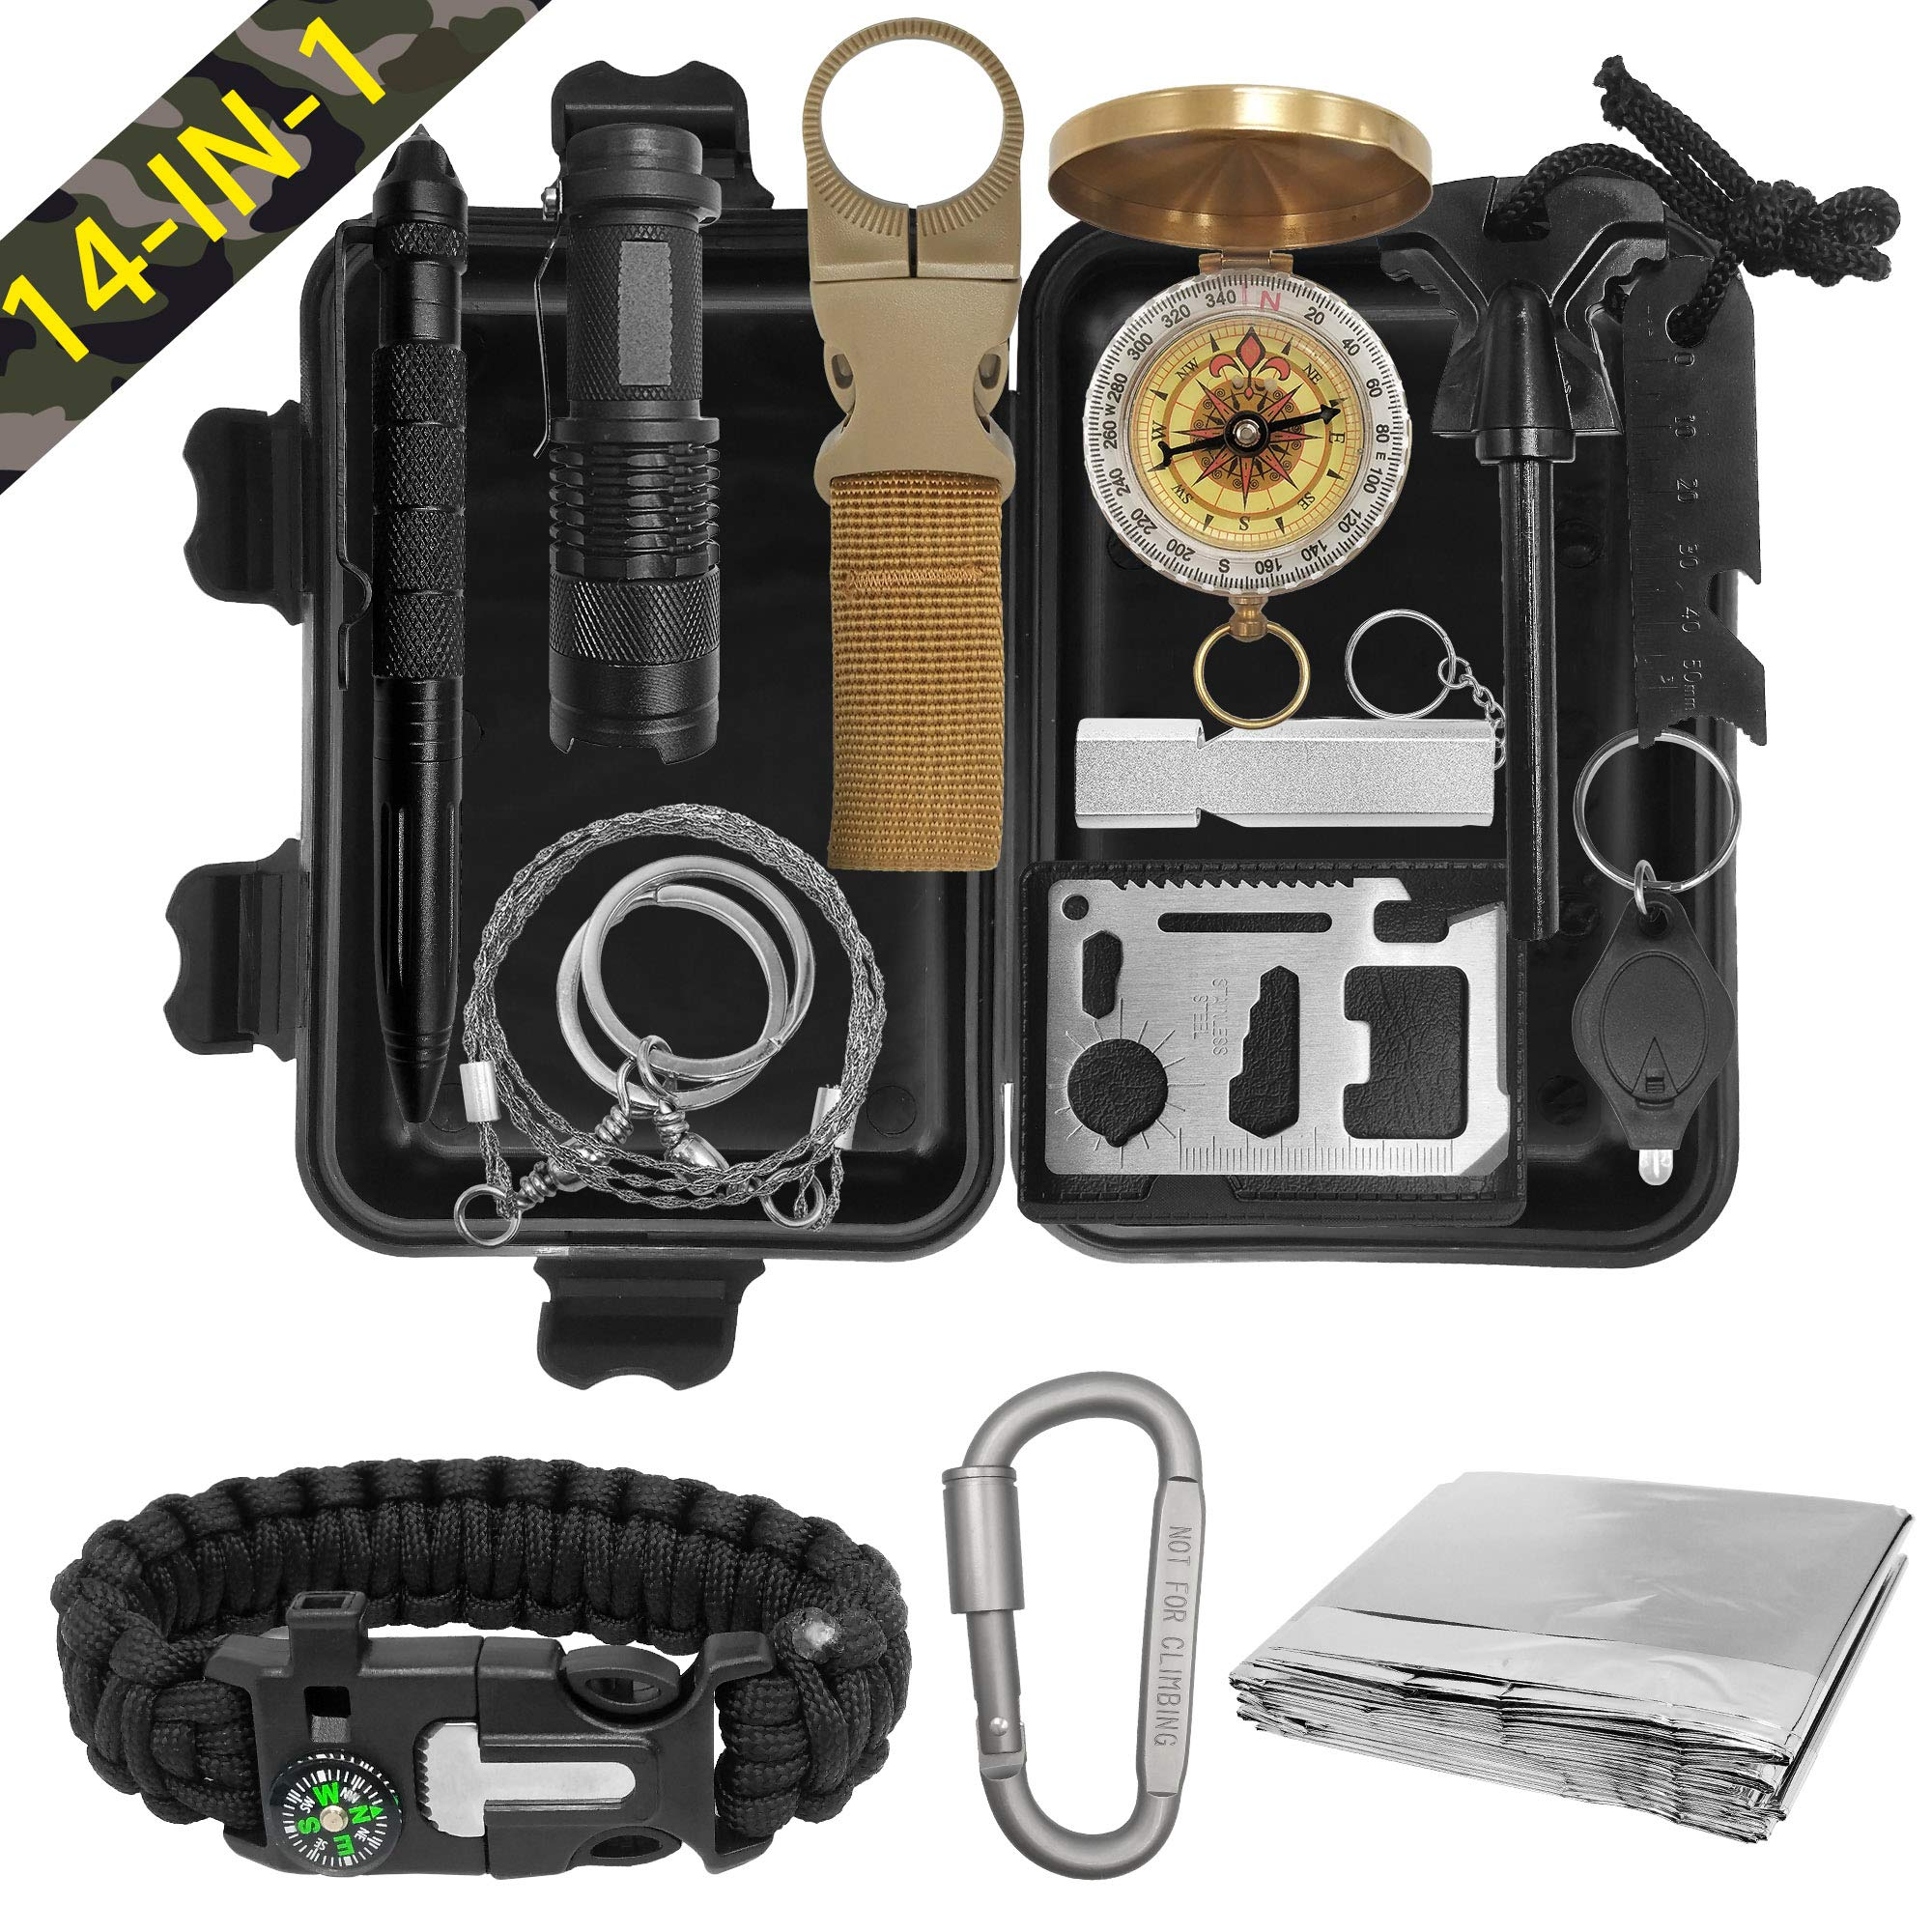 XMQY Pocket Survival Kits - Boy Scout Gifts First Aid Kit Camping Gear Emergency Tools Car Gadgets Multitool Hiking Hunting Accessories Christmas Day Birthday Presents Son Him Men by XMQY